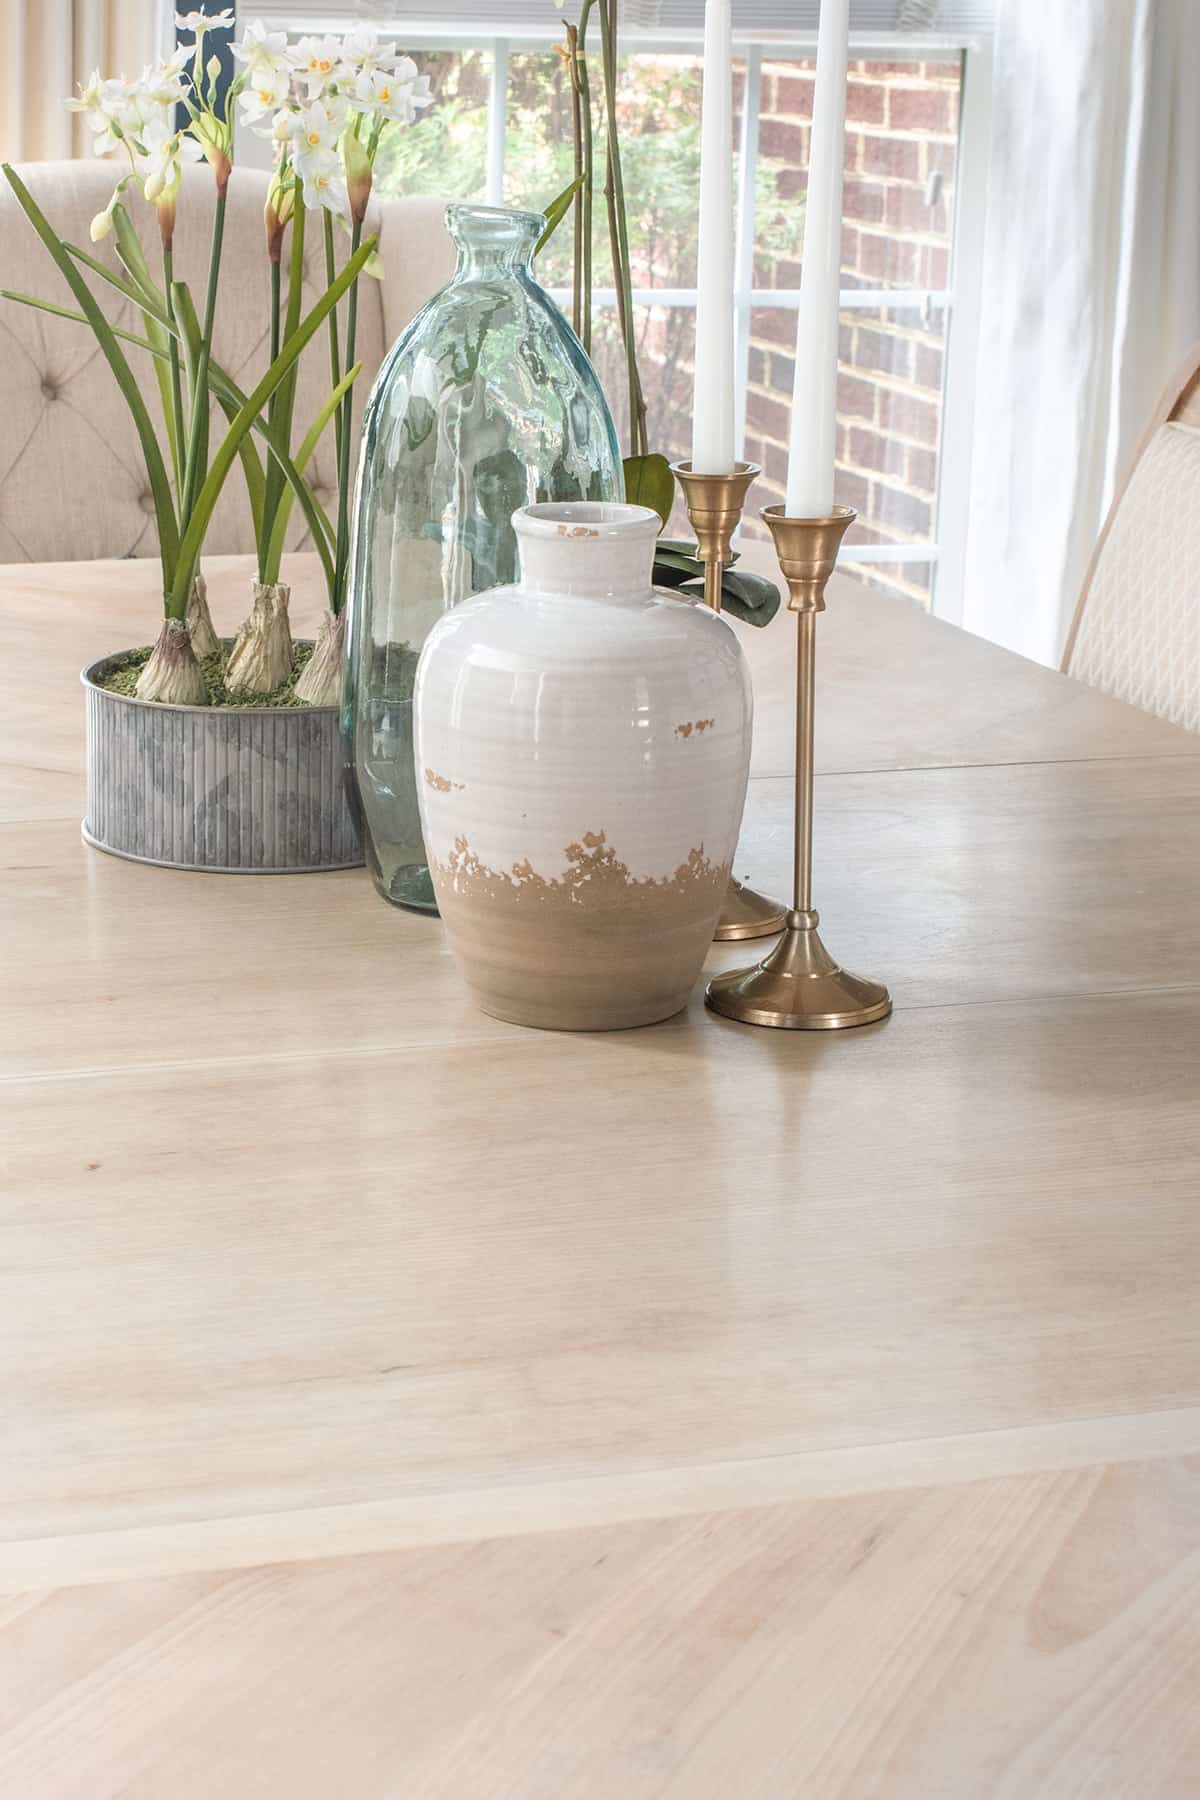 Photo of stained and top-coated dining room table in raw natural finish. Center piece items include paper whites, white & tan pottery jug, brass candlesticks.